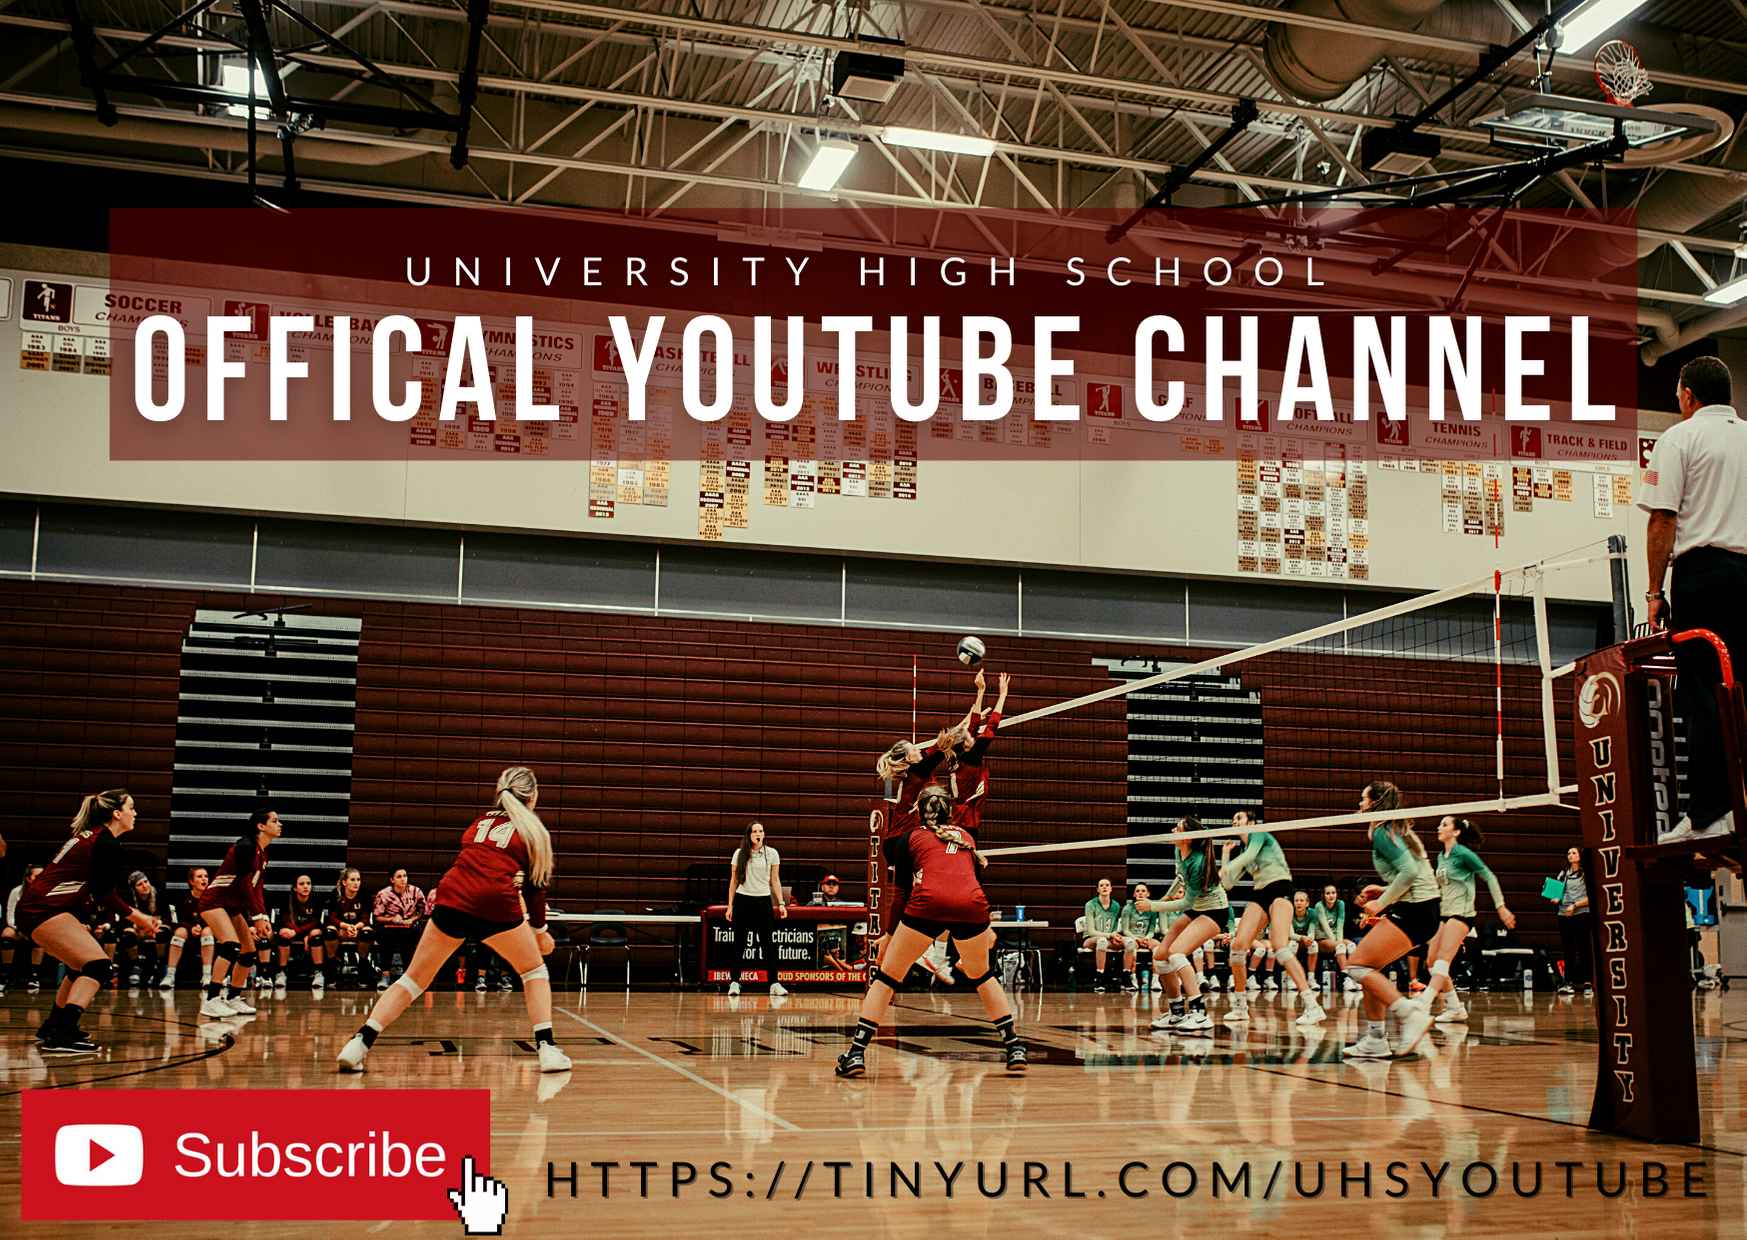 Official UHS YouTube Channel advertisement